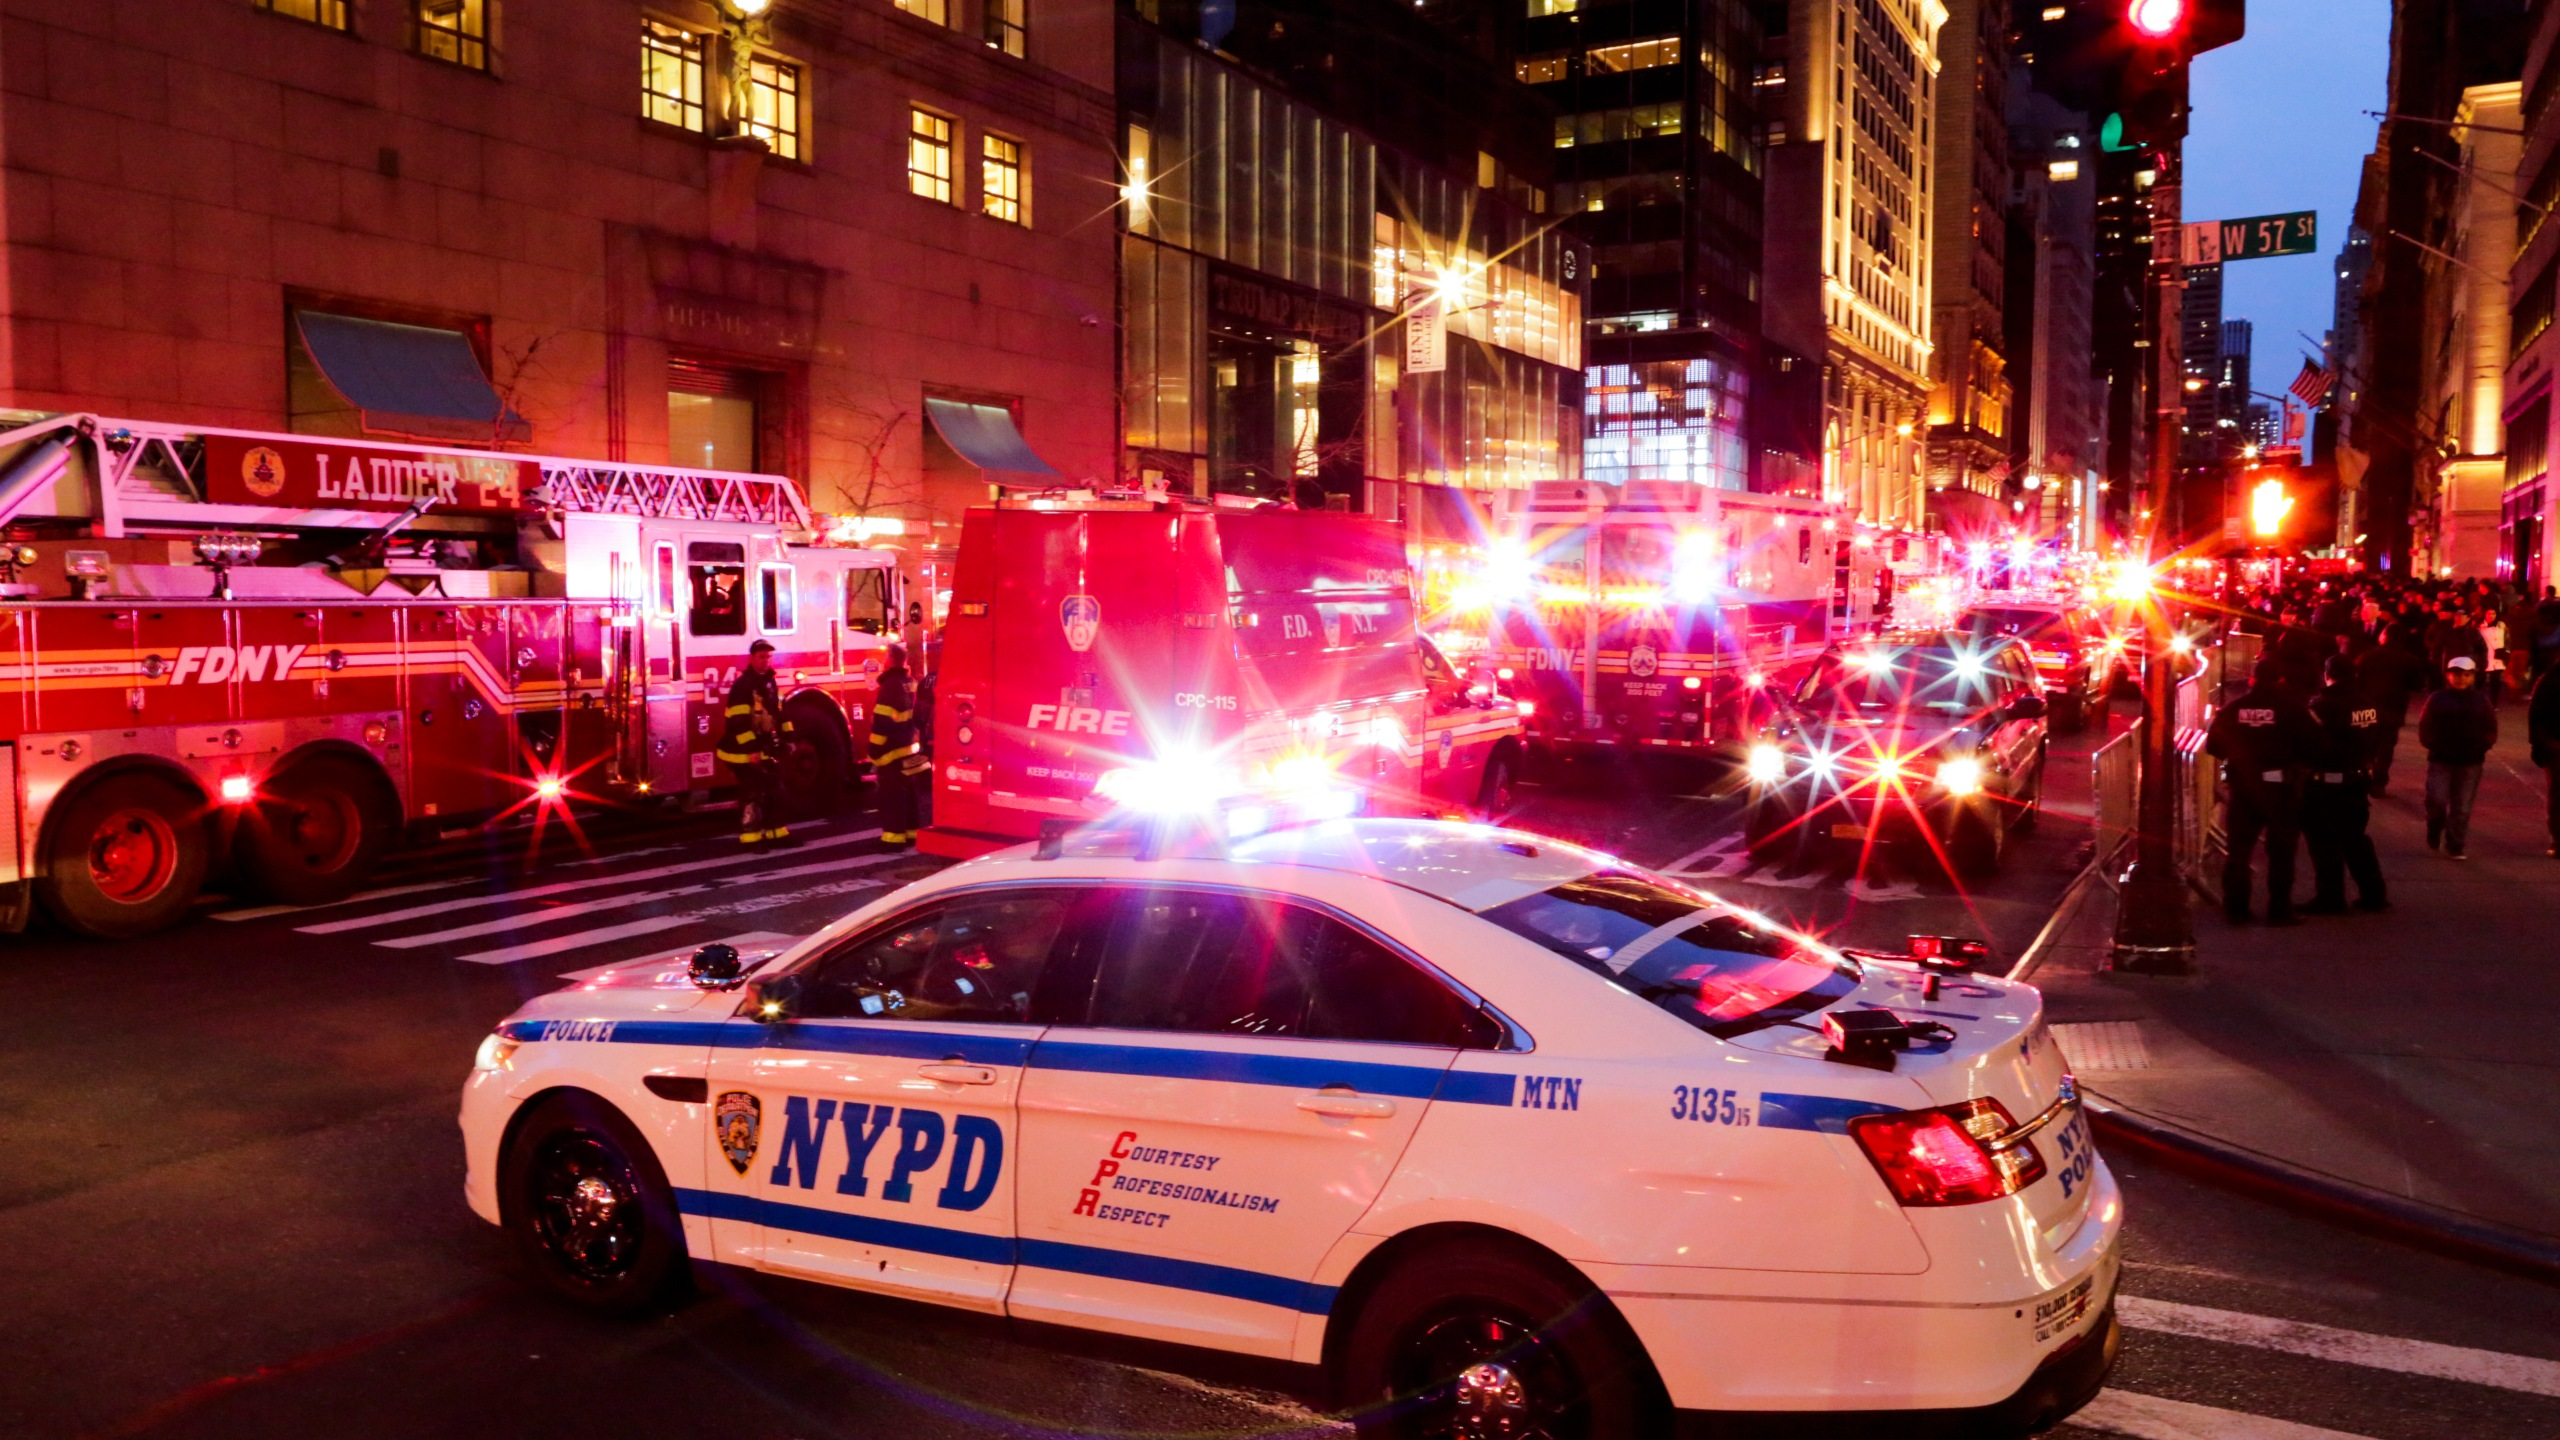 NYPD officers and first responders assess the scene of a fire at Trump Tower on April 7, 2018 in New York City. (Credit: Eduardo Munoz Alvarez/Getty Images)